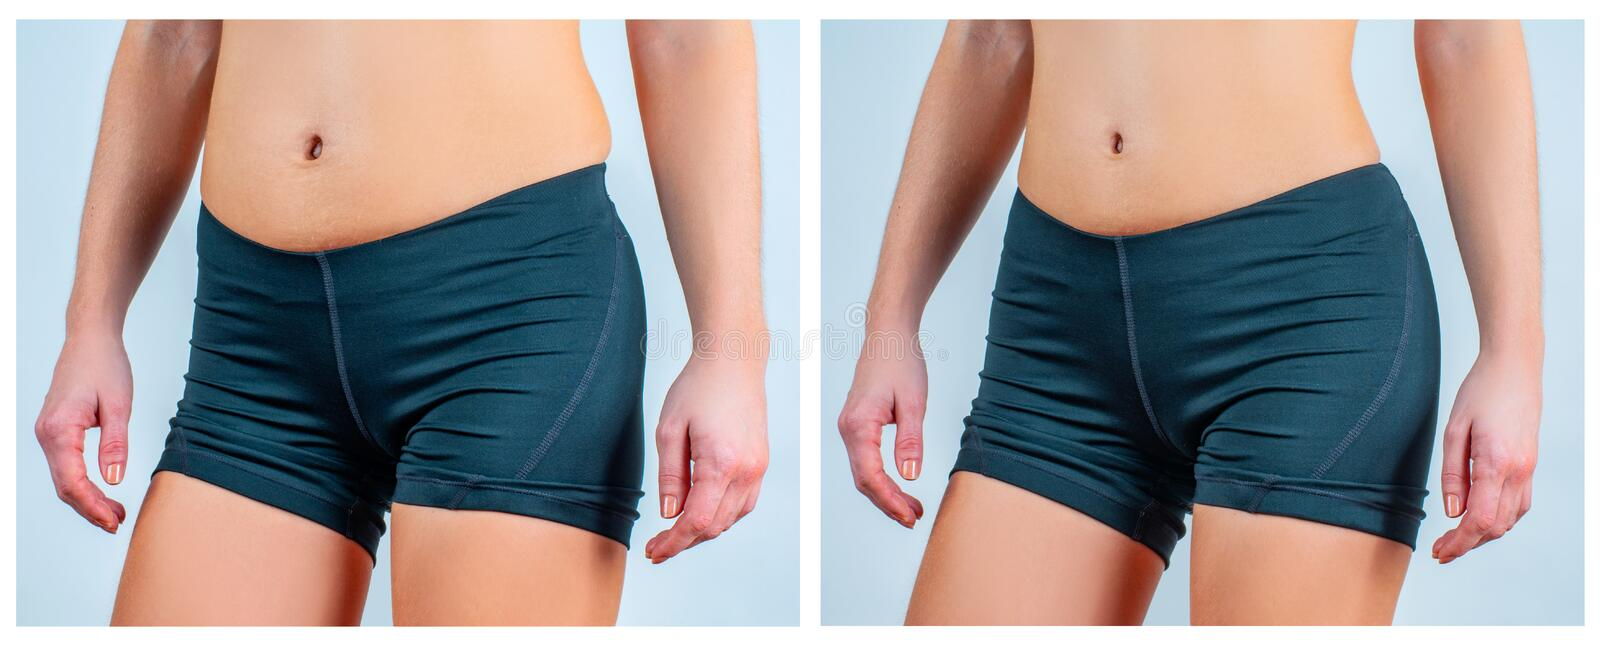 Liposuction Stock Images - Download 4,197 Royalty Free Photos - Page 2